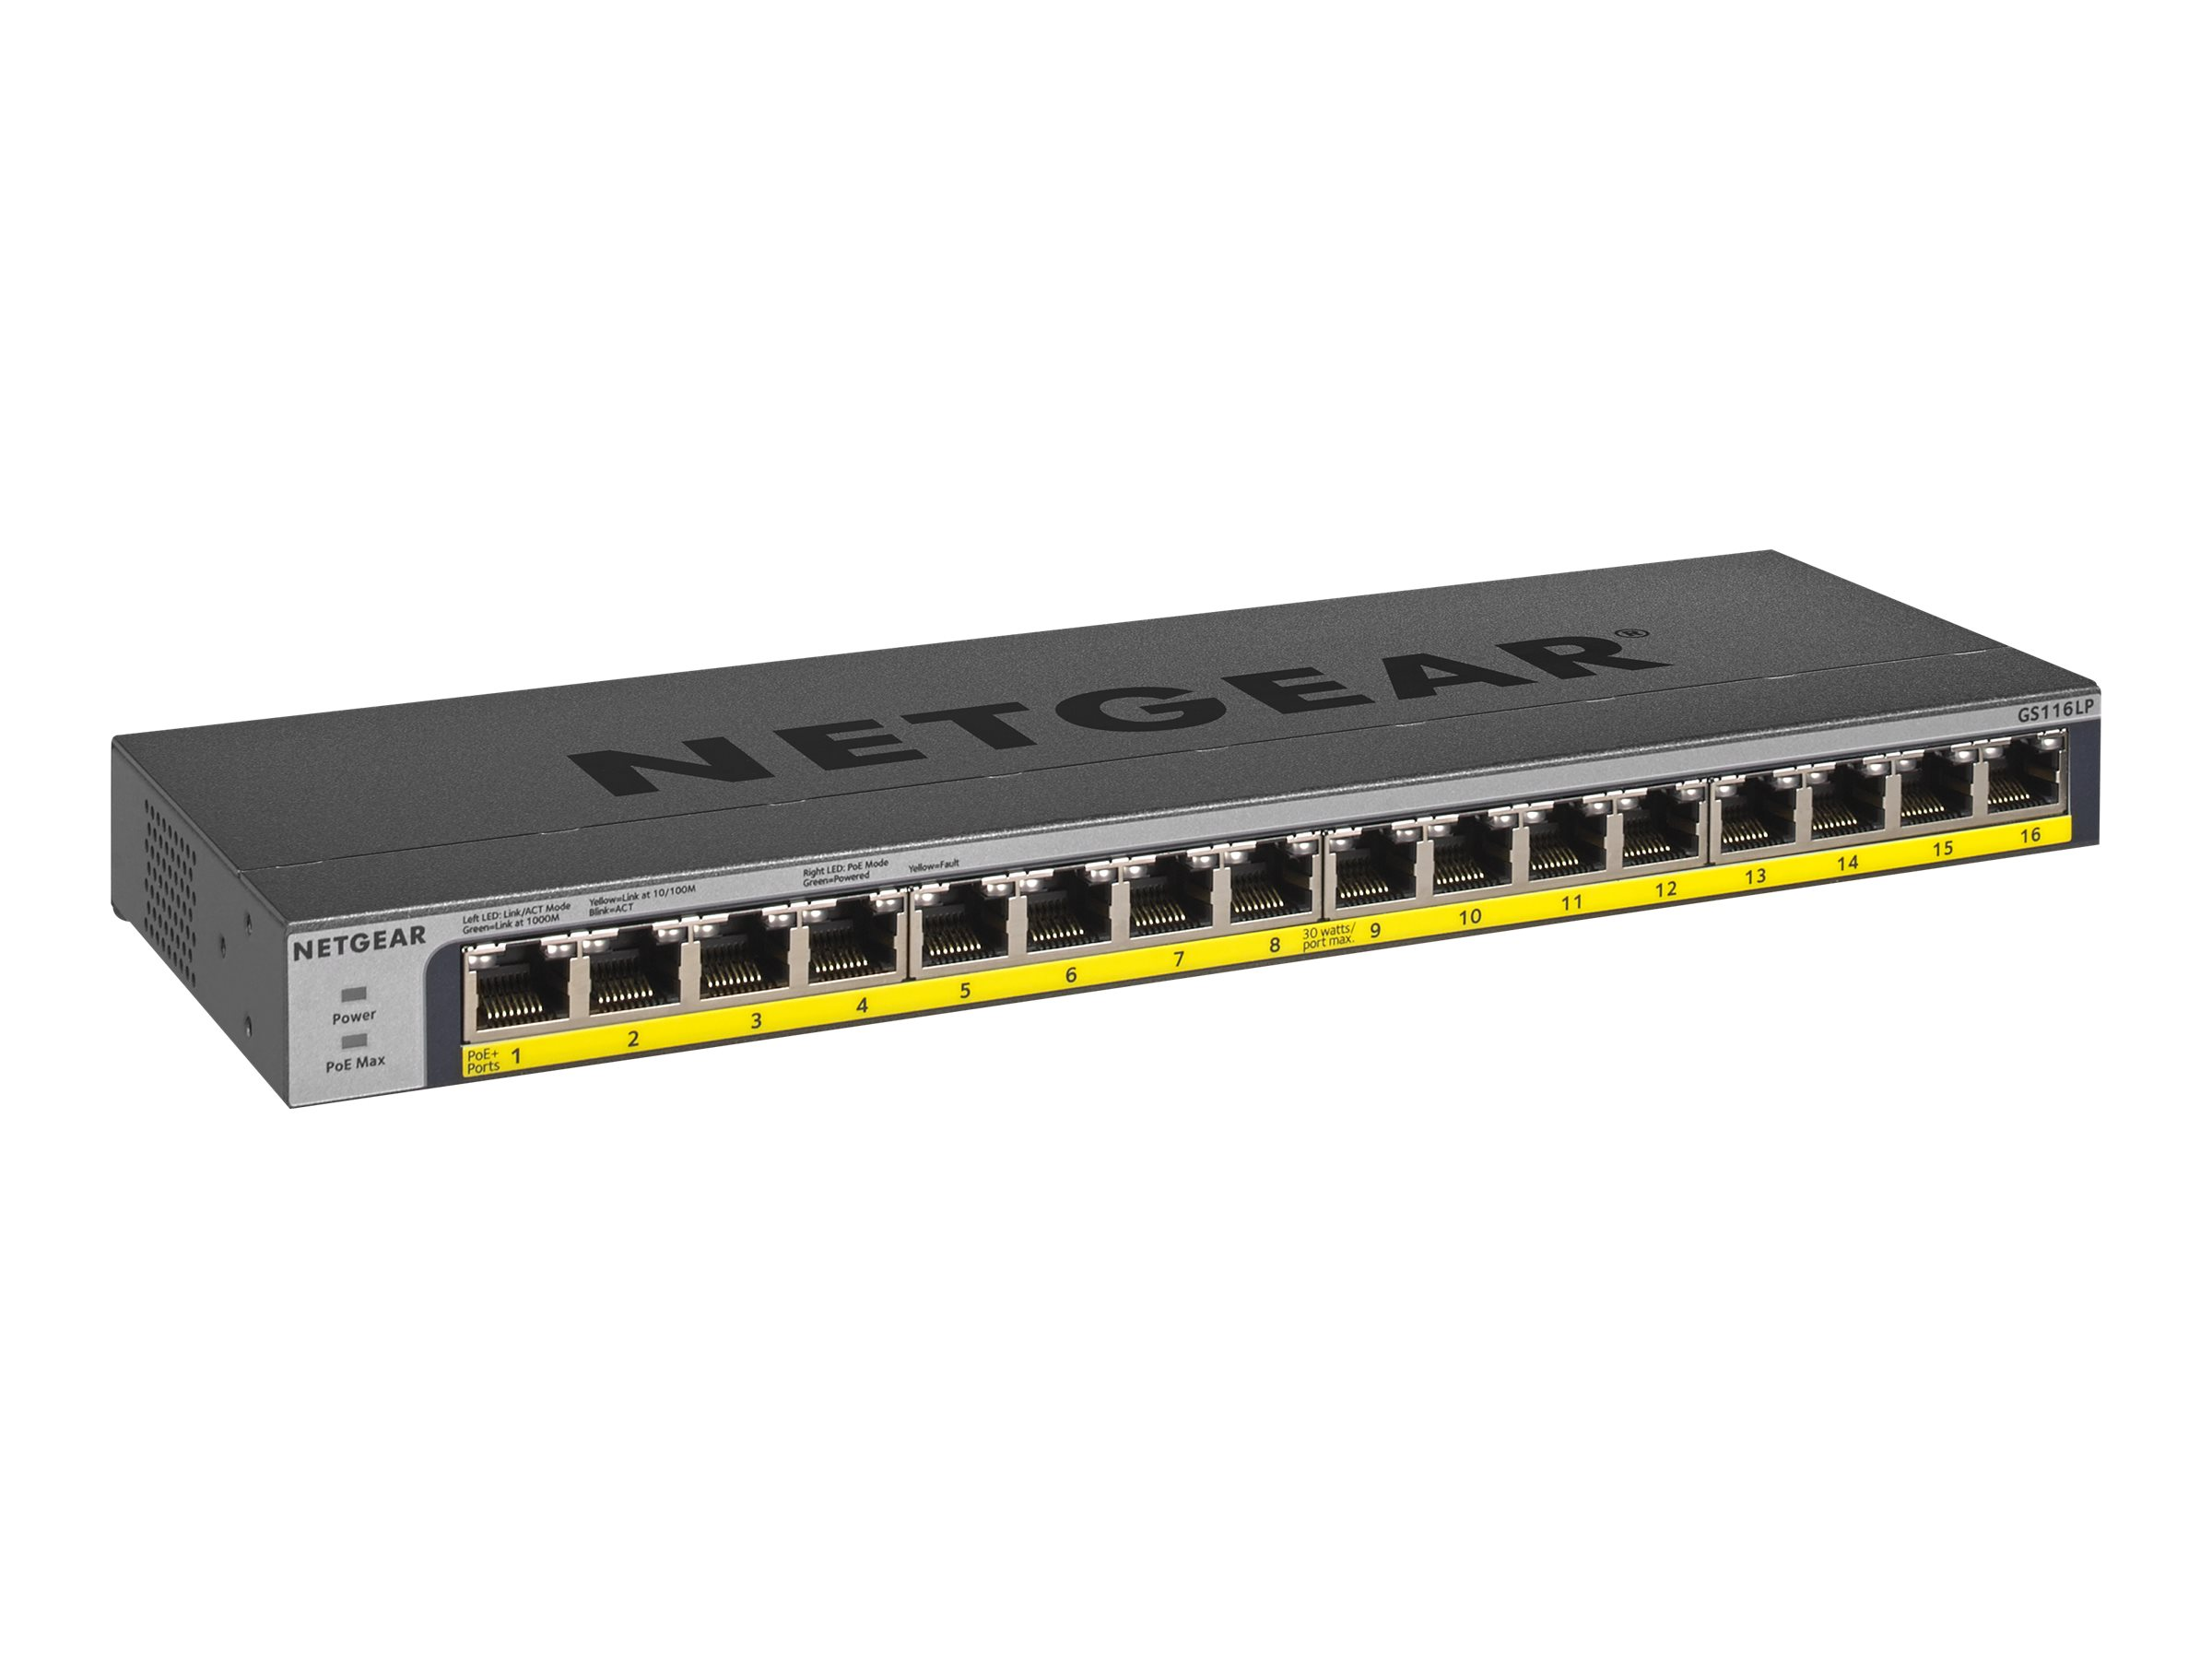 NETGEAR GS116LP - switch - 16 ports - unmanaged - rack-mountable